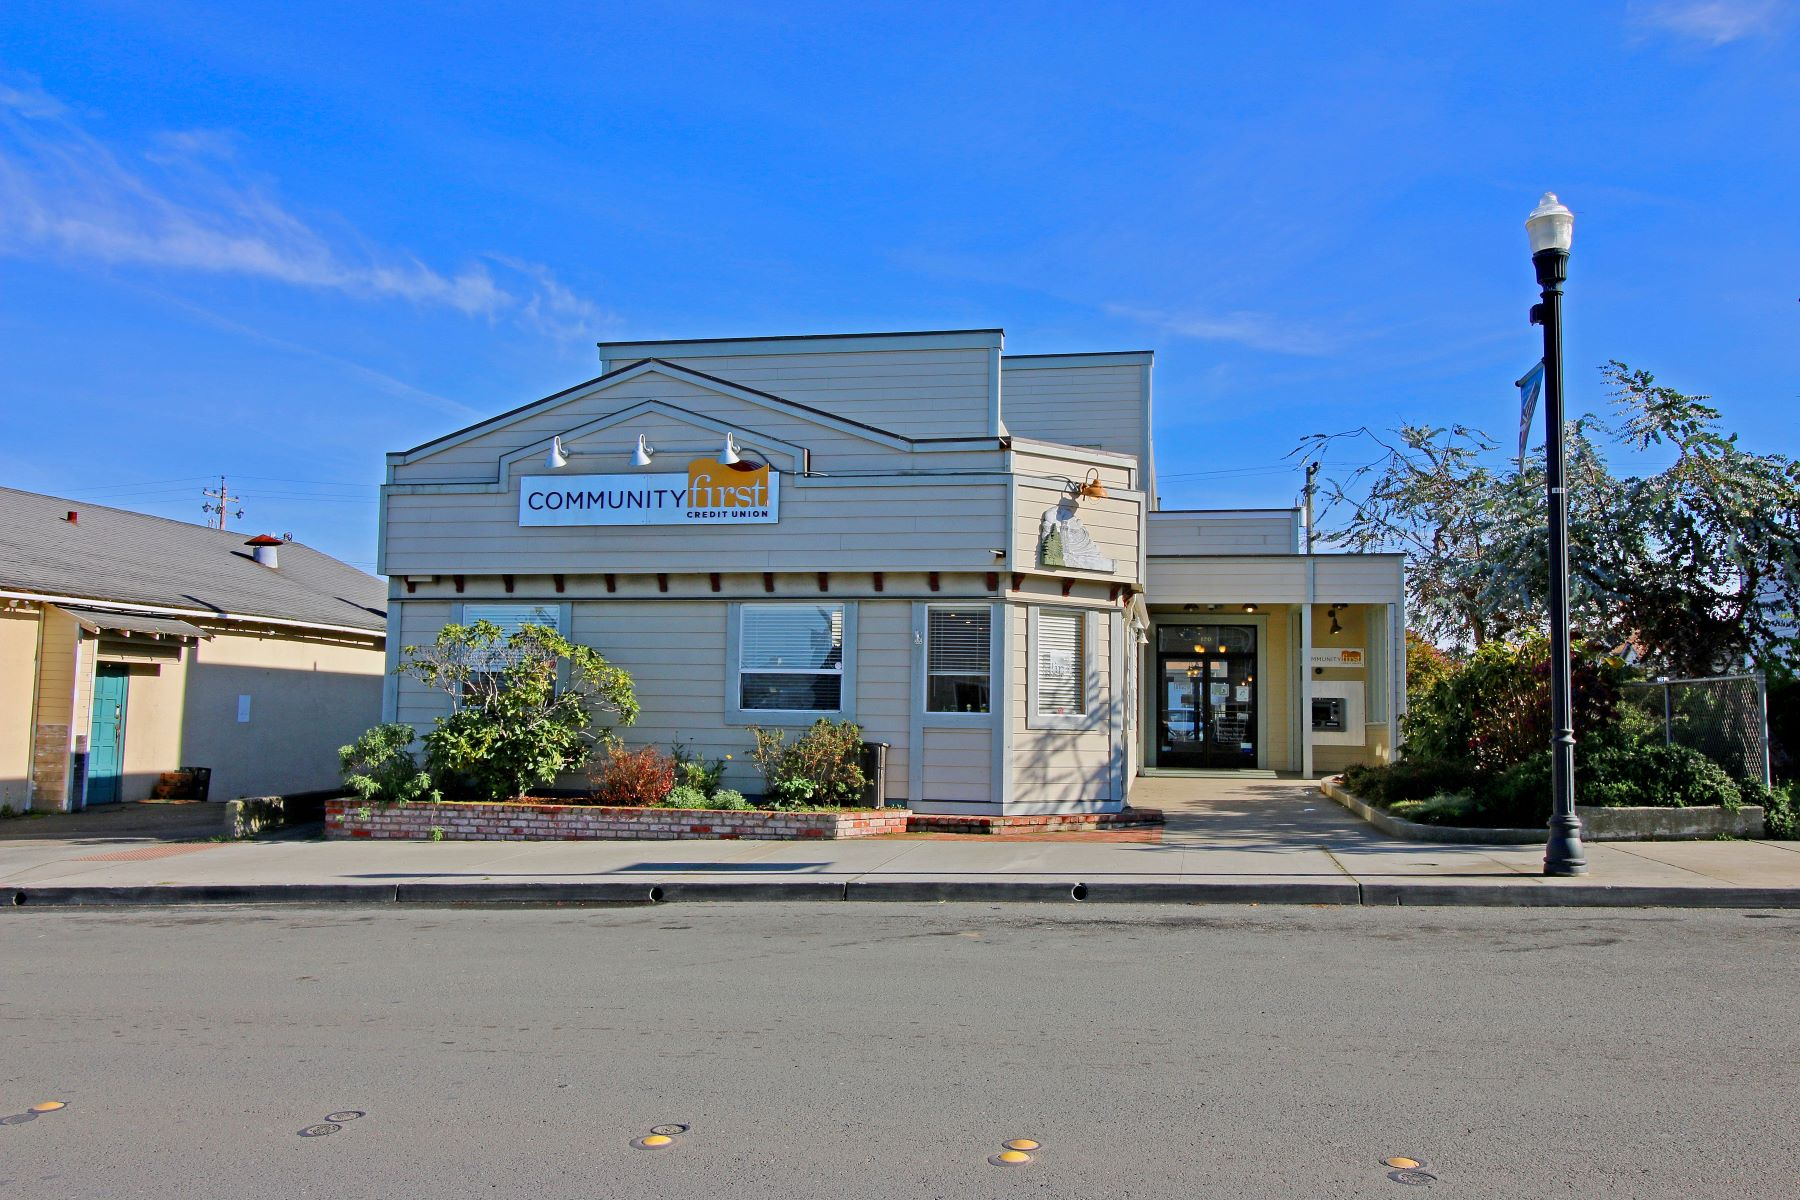 Commercial for Sale at Great Commercial Opportunity 120 N Franklin Street Fort Bragg, California 95437 United States